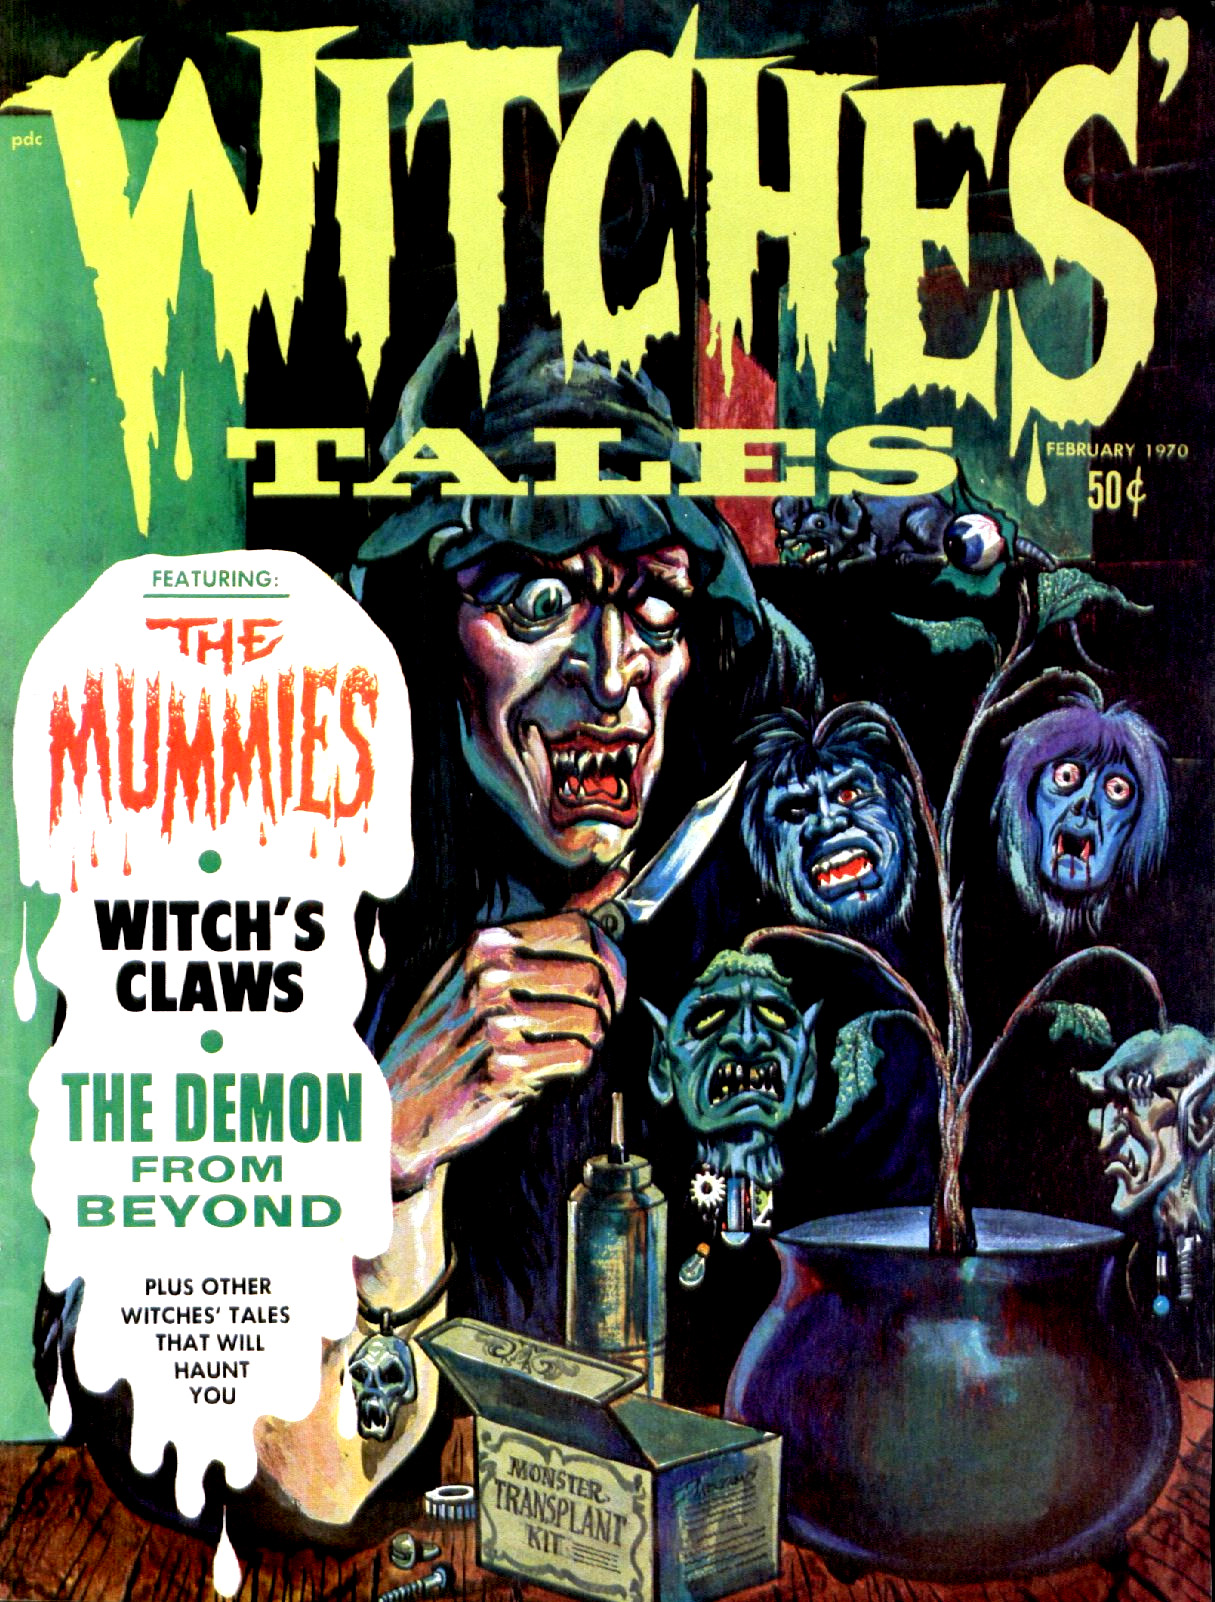 Witches' Tales Vol. 2 #1 (Eerie Publications 1970)